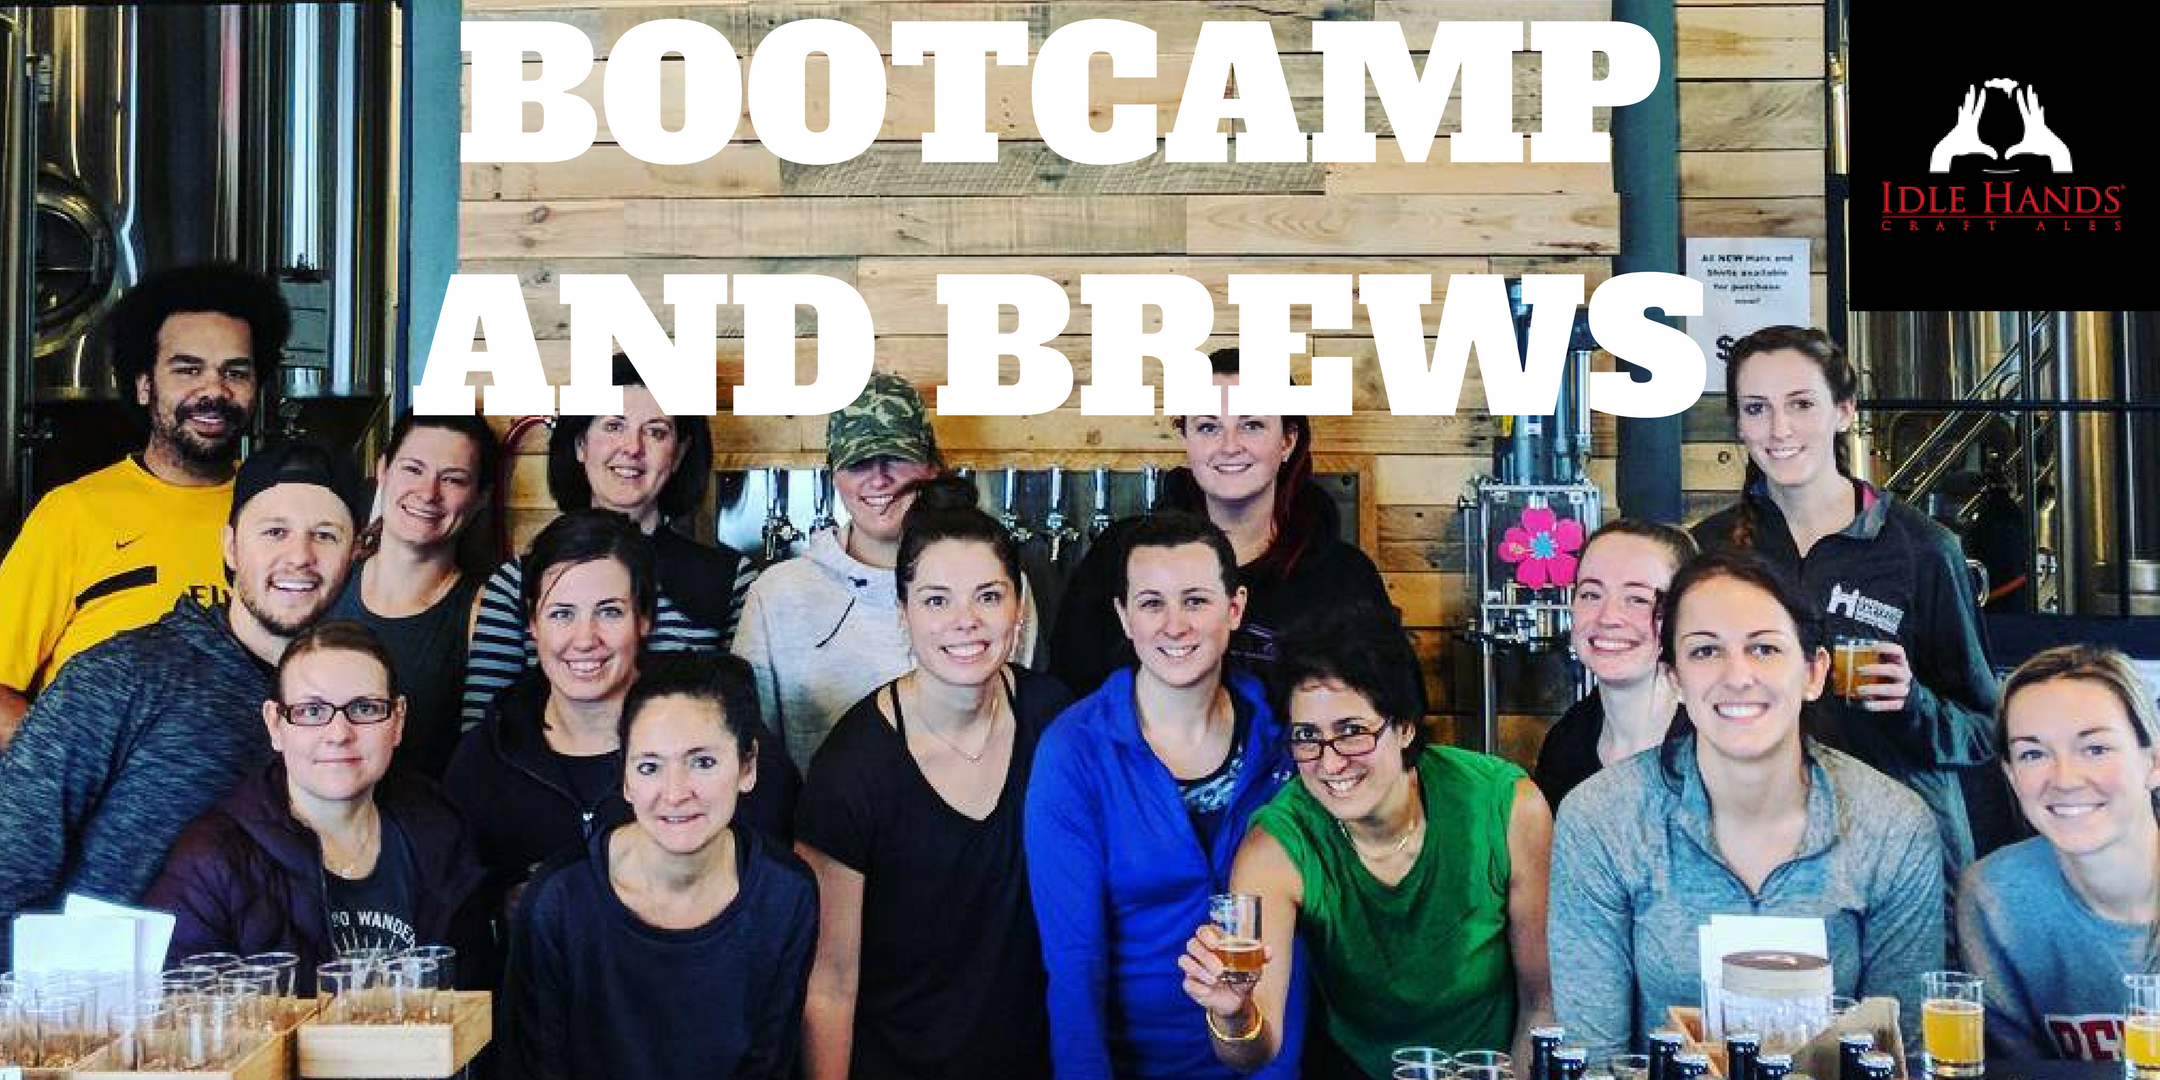 Bootcamp and Brews @ Idle Hands